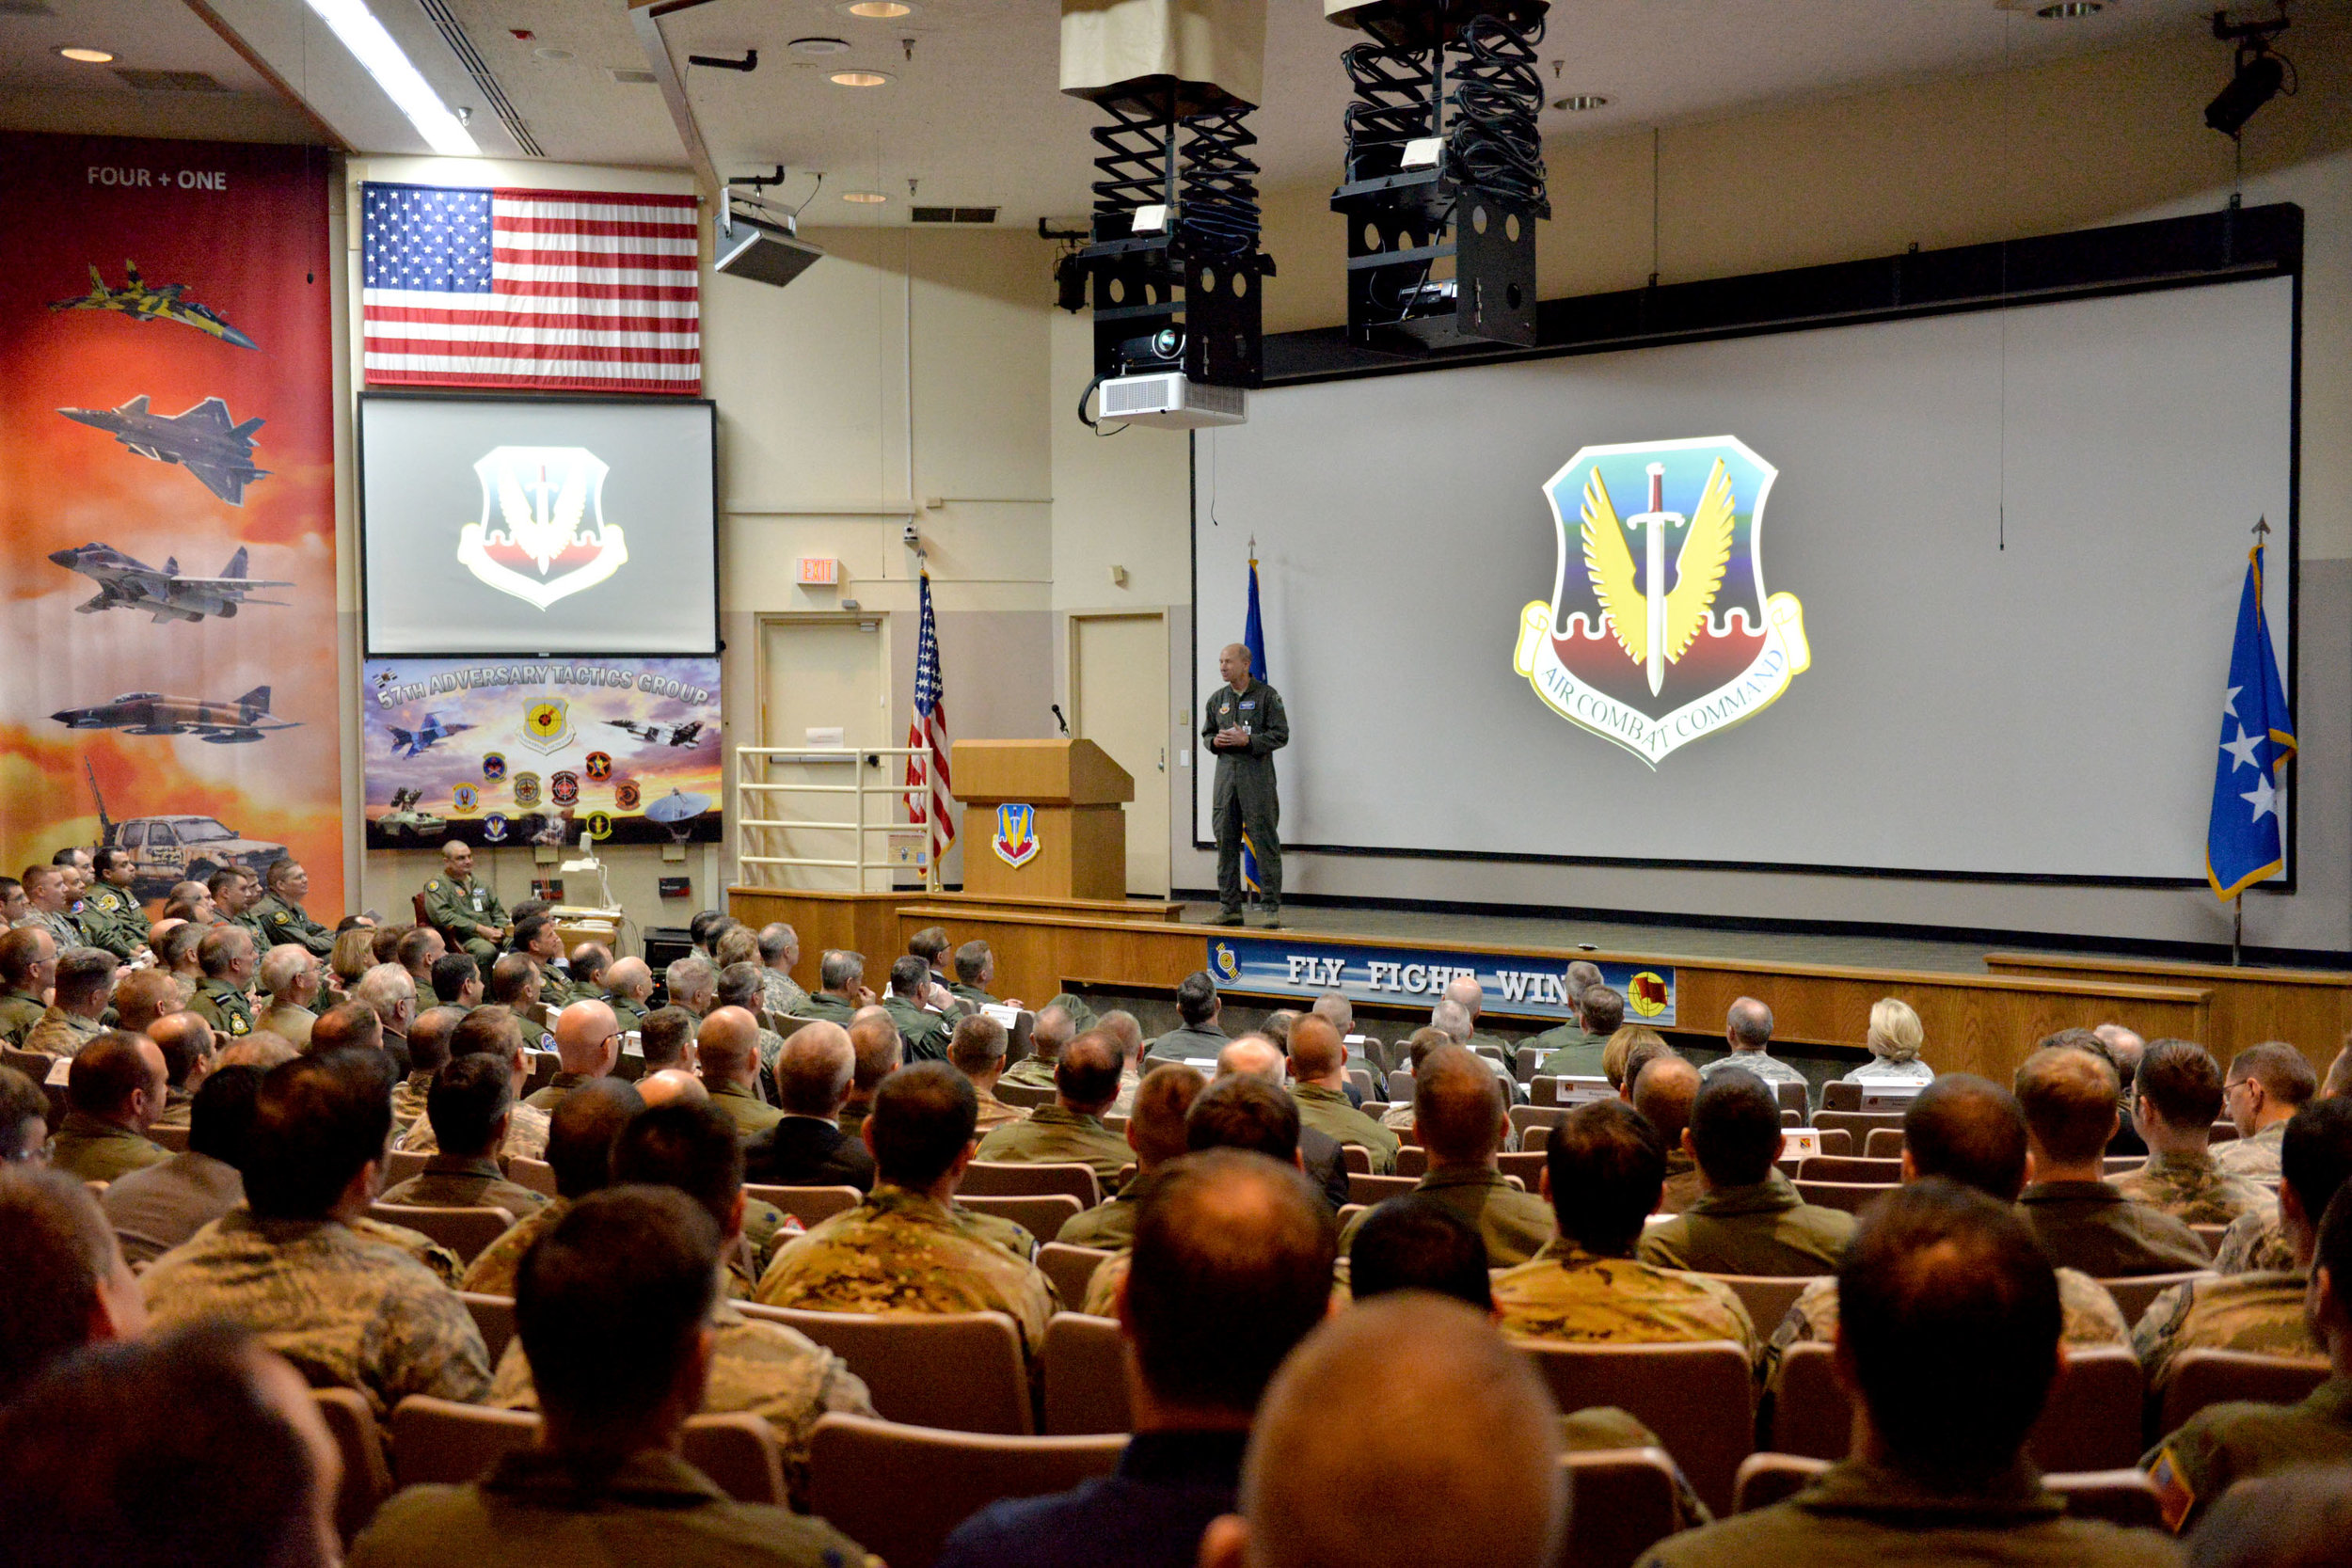 Gen. Mike Holmes, commander of the U.S. Air Force's Air Combat Command, presents a keynote speech during the 2018 Combat Air Force Weapons and Tactics Conference (CAF WEPTAC) at Nellis Air Force Base, Nev. WEPTAC is an annual two-week conference to bring together warfighters from Combat Air Forces to discuss current issues, to look at future issues and to provide solutions for joint and coalition air forces. PHOTO U.S. Air Force's Lawrence Crespo